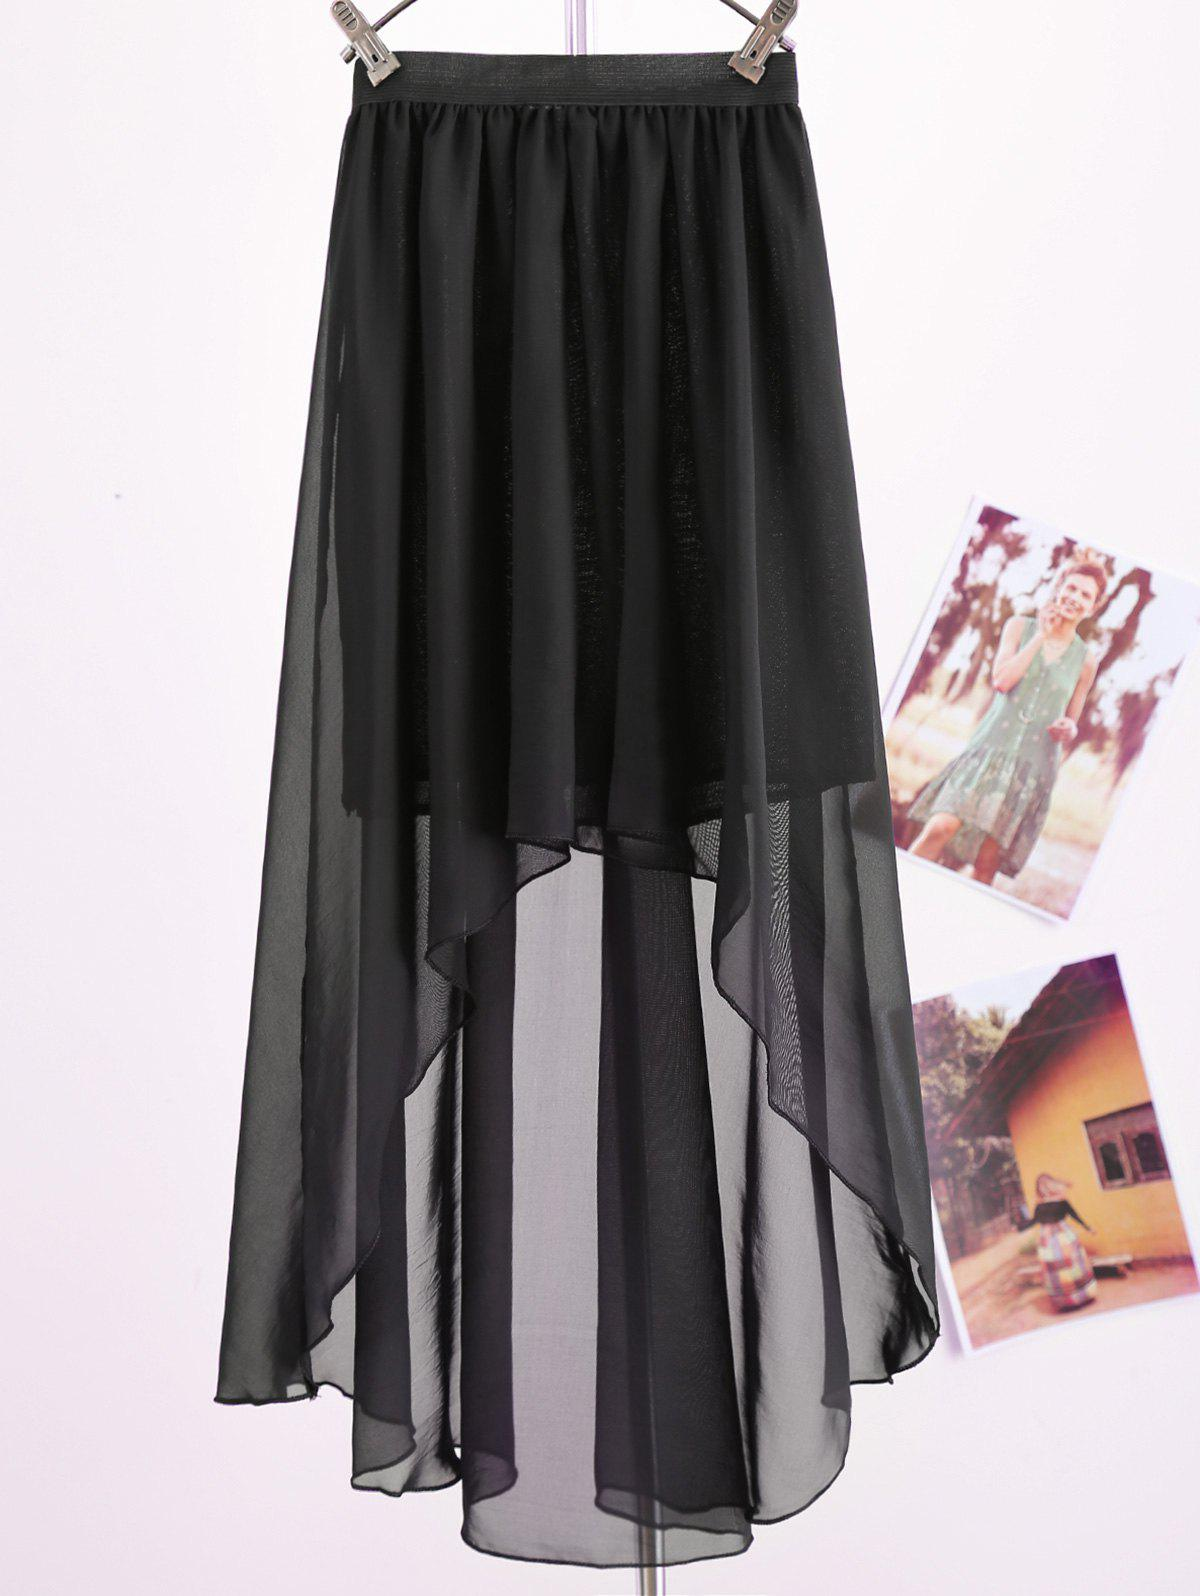 Women's Chiffon Pleated Retro Asymmetrical Swallow Tail Short Elastic Waist Skirt - BLACK ONE SIZE